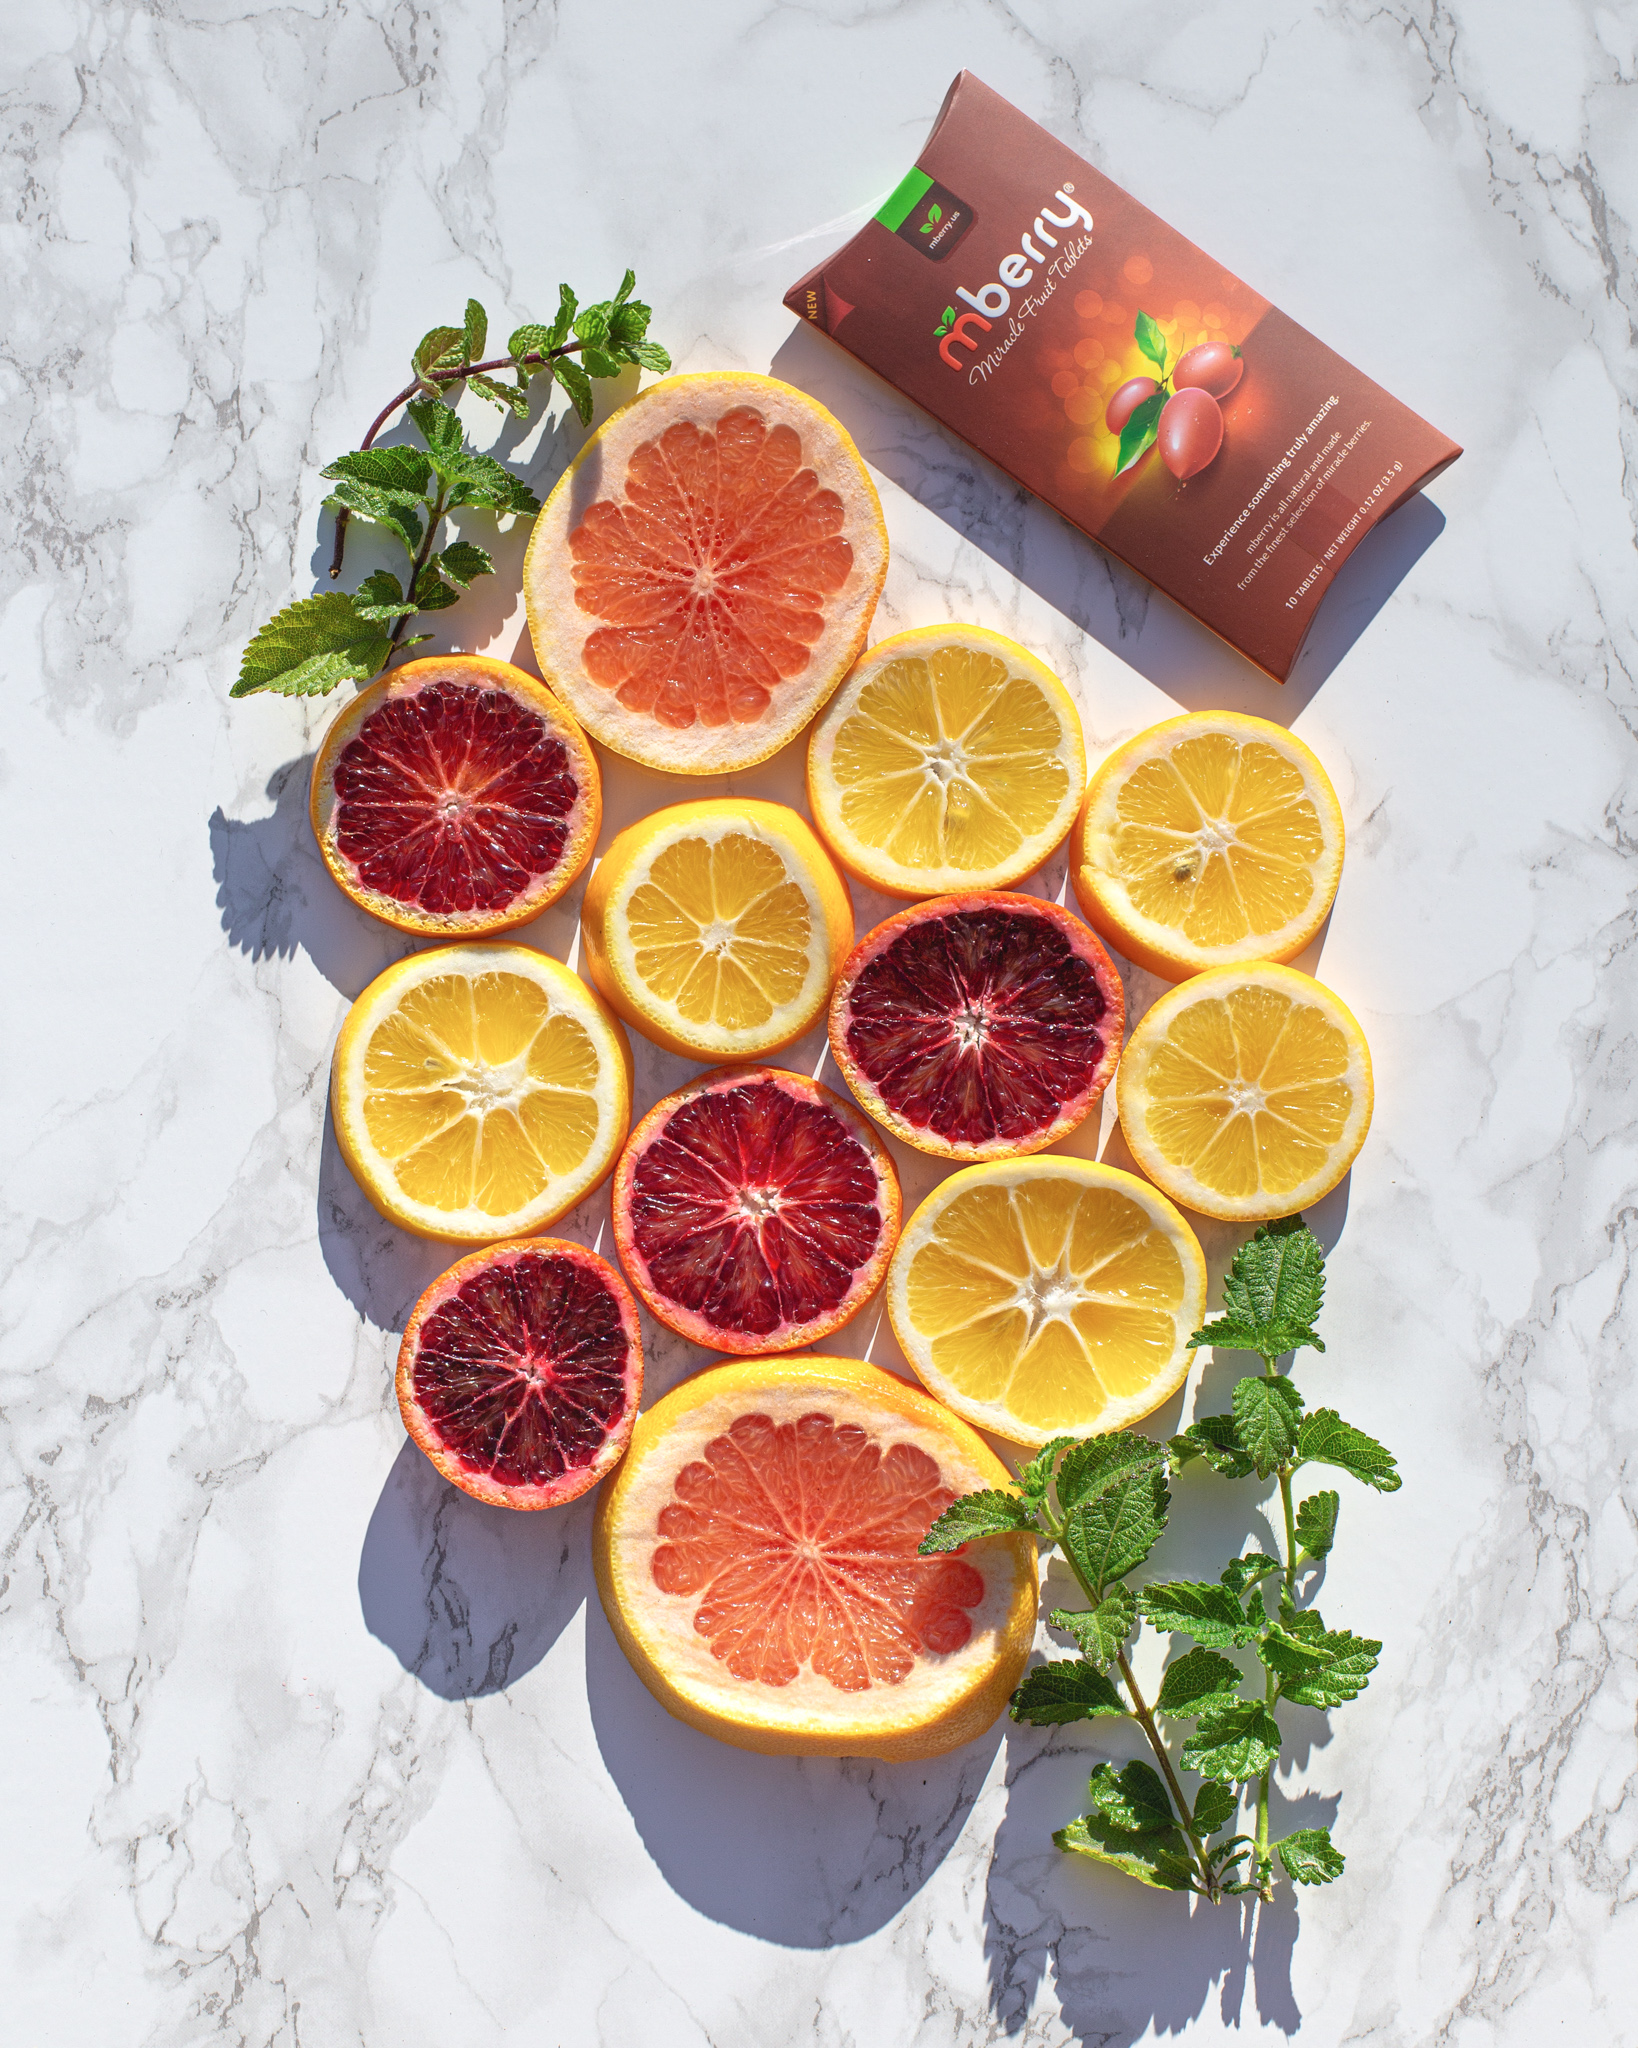 Arrangement of sliced blood oranges, pomelo, and lemons with a sprigs of mint. Featuring mberry tablets.